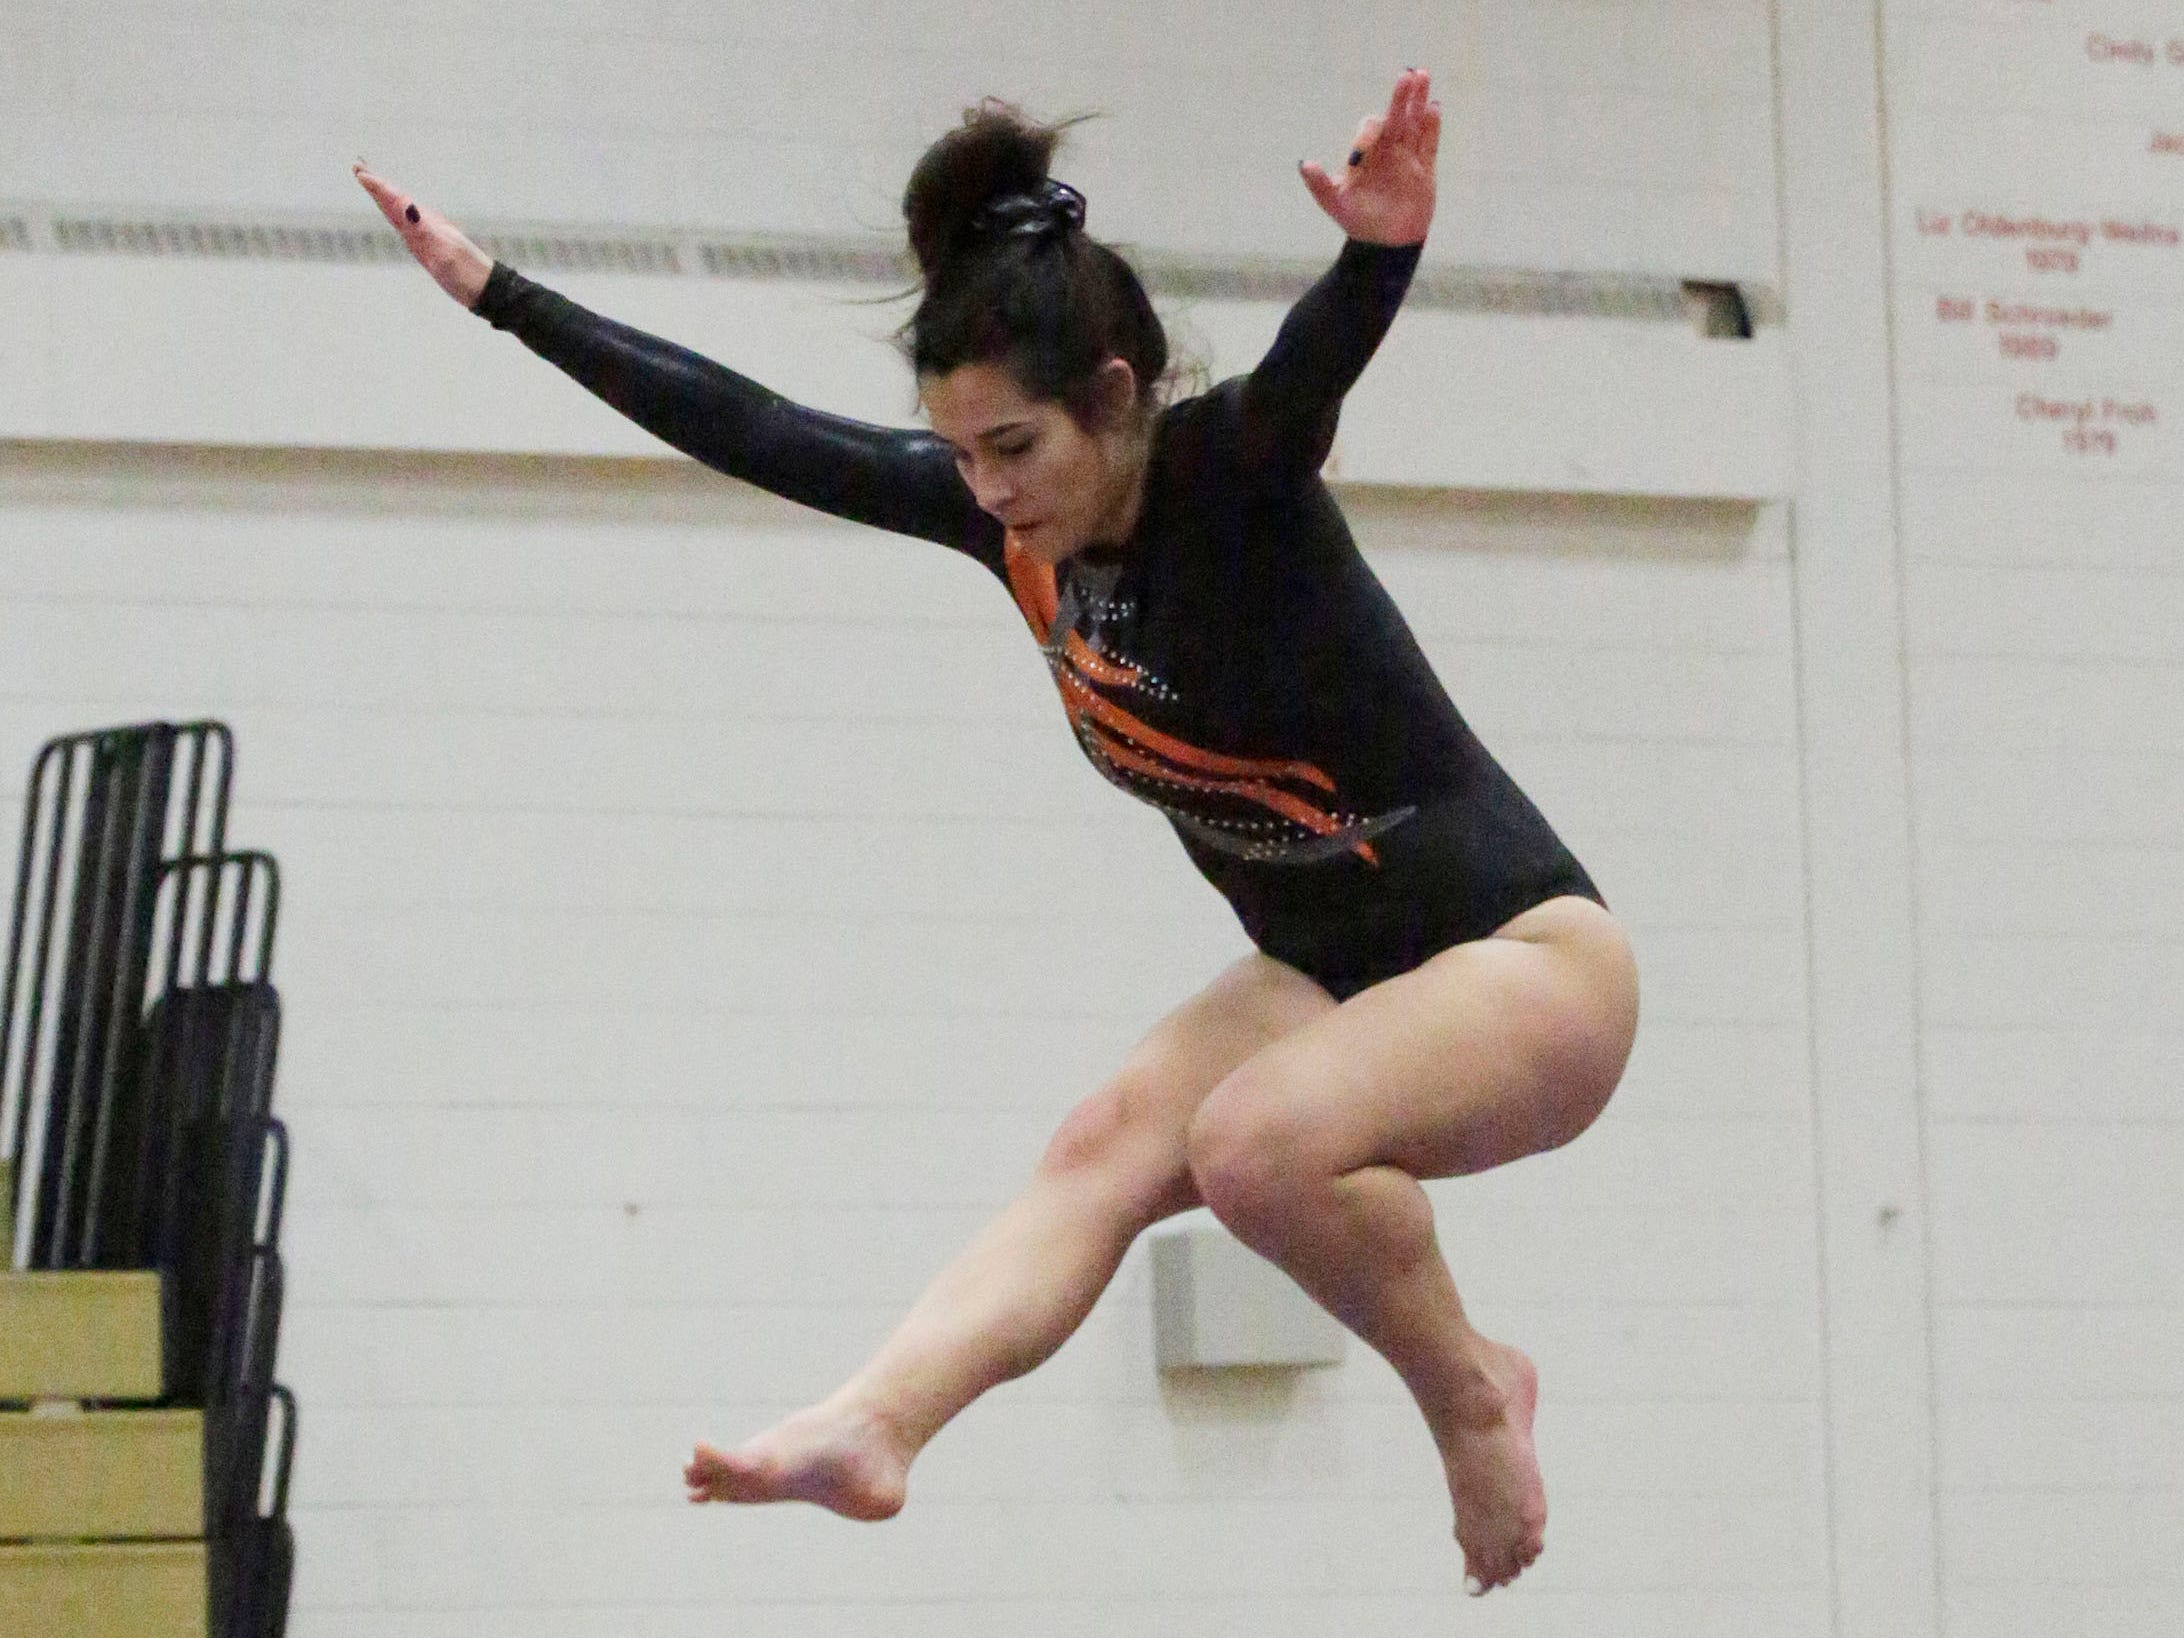 Kaukauna's Grace Moore leaps on the balance beam during the WIAA Eastern Valley Conference Gymnastics Meet at Sheboygan South, Friday, February 15, 2019, in Sheboygan, Wis.